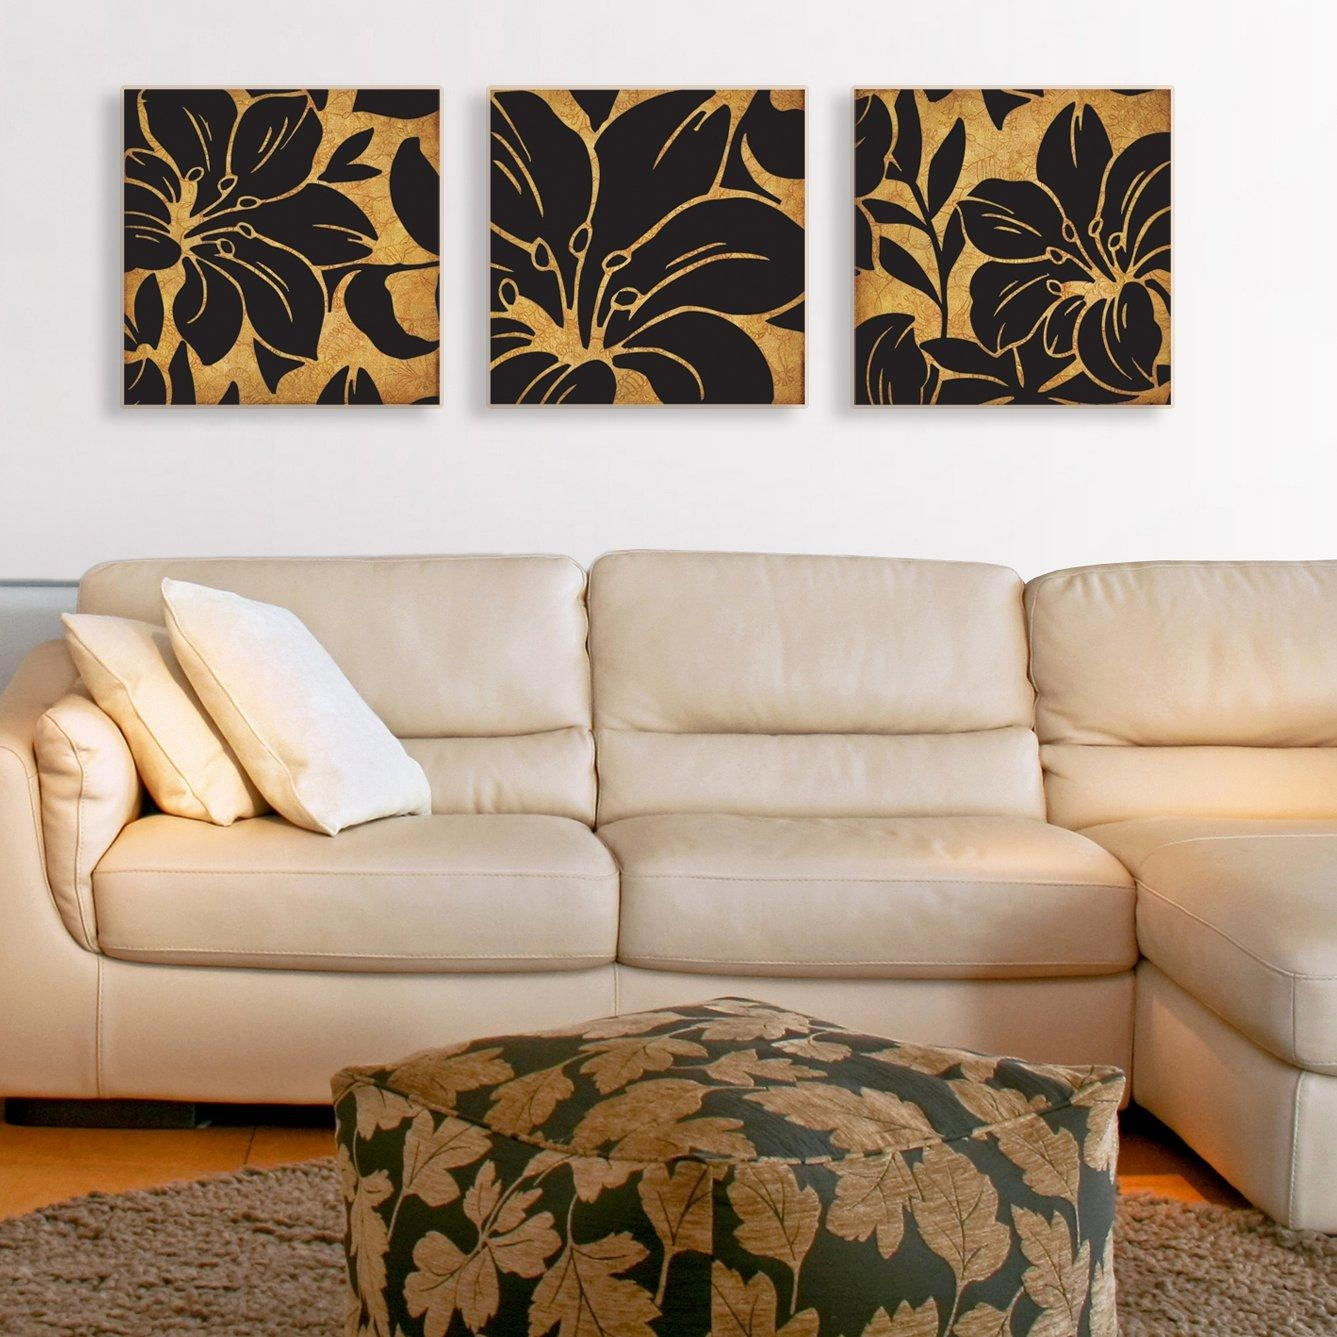 3 Piece Canvas Wall Art | Roselawnlutheran Regarding 3 Piece Floral Canvas Wall Art (Image 3 of 20)